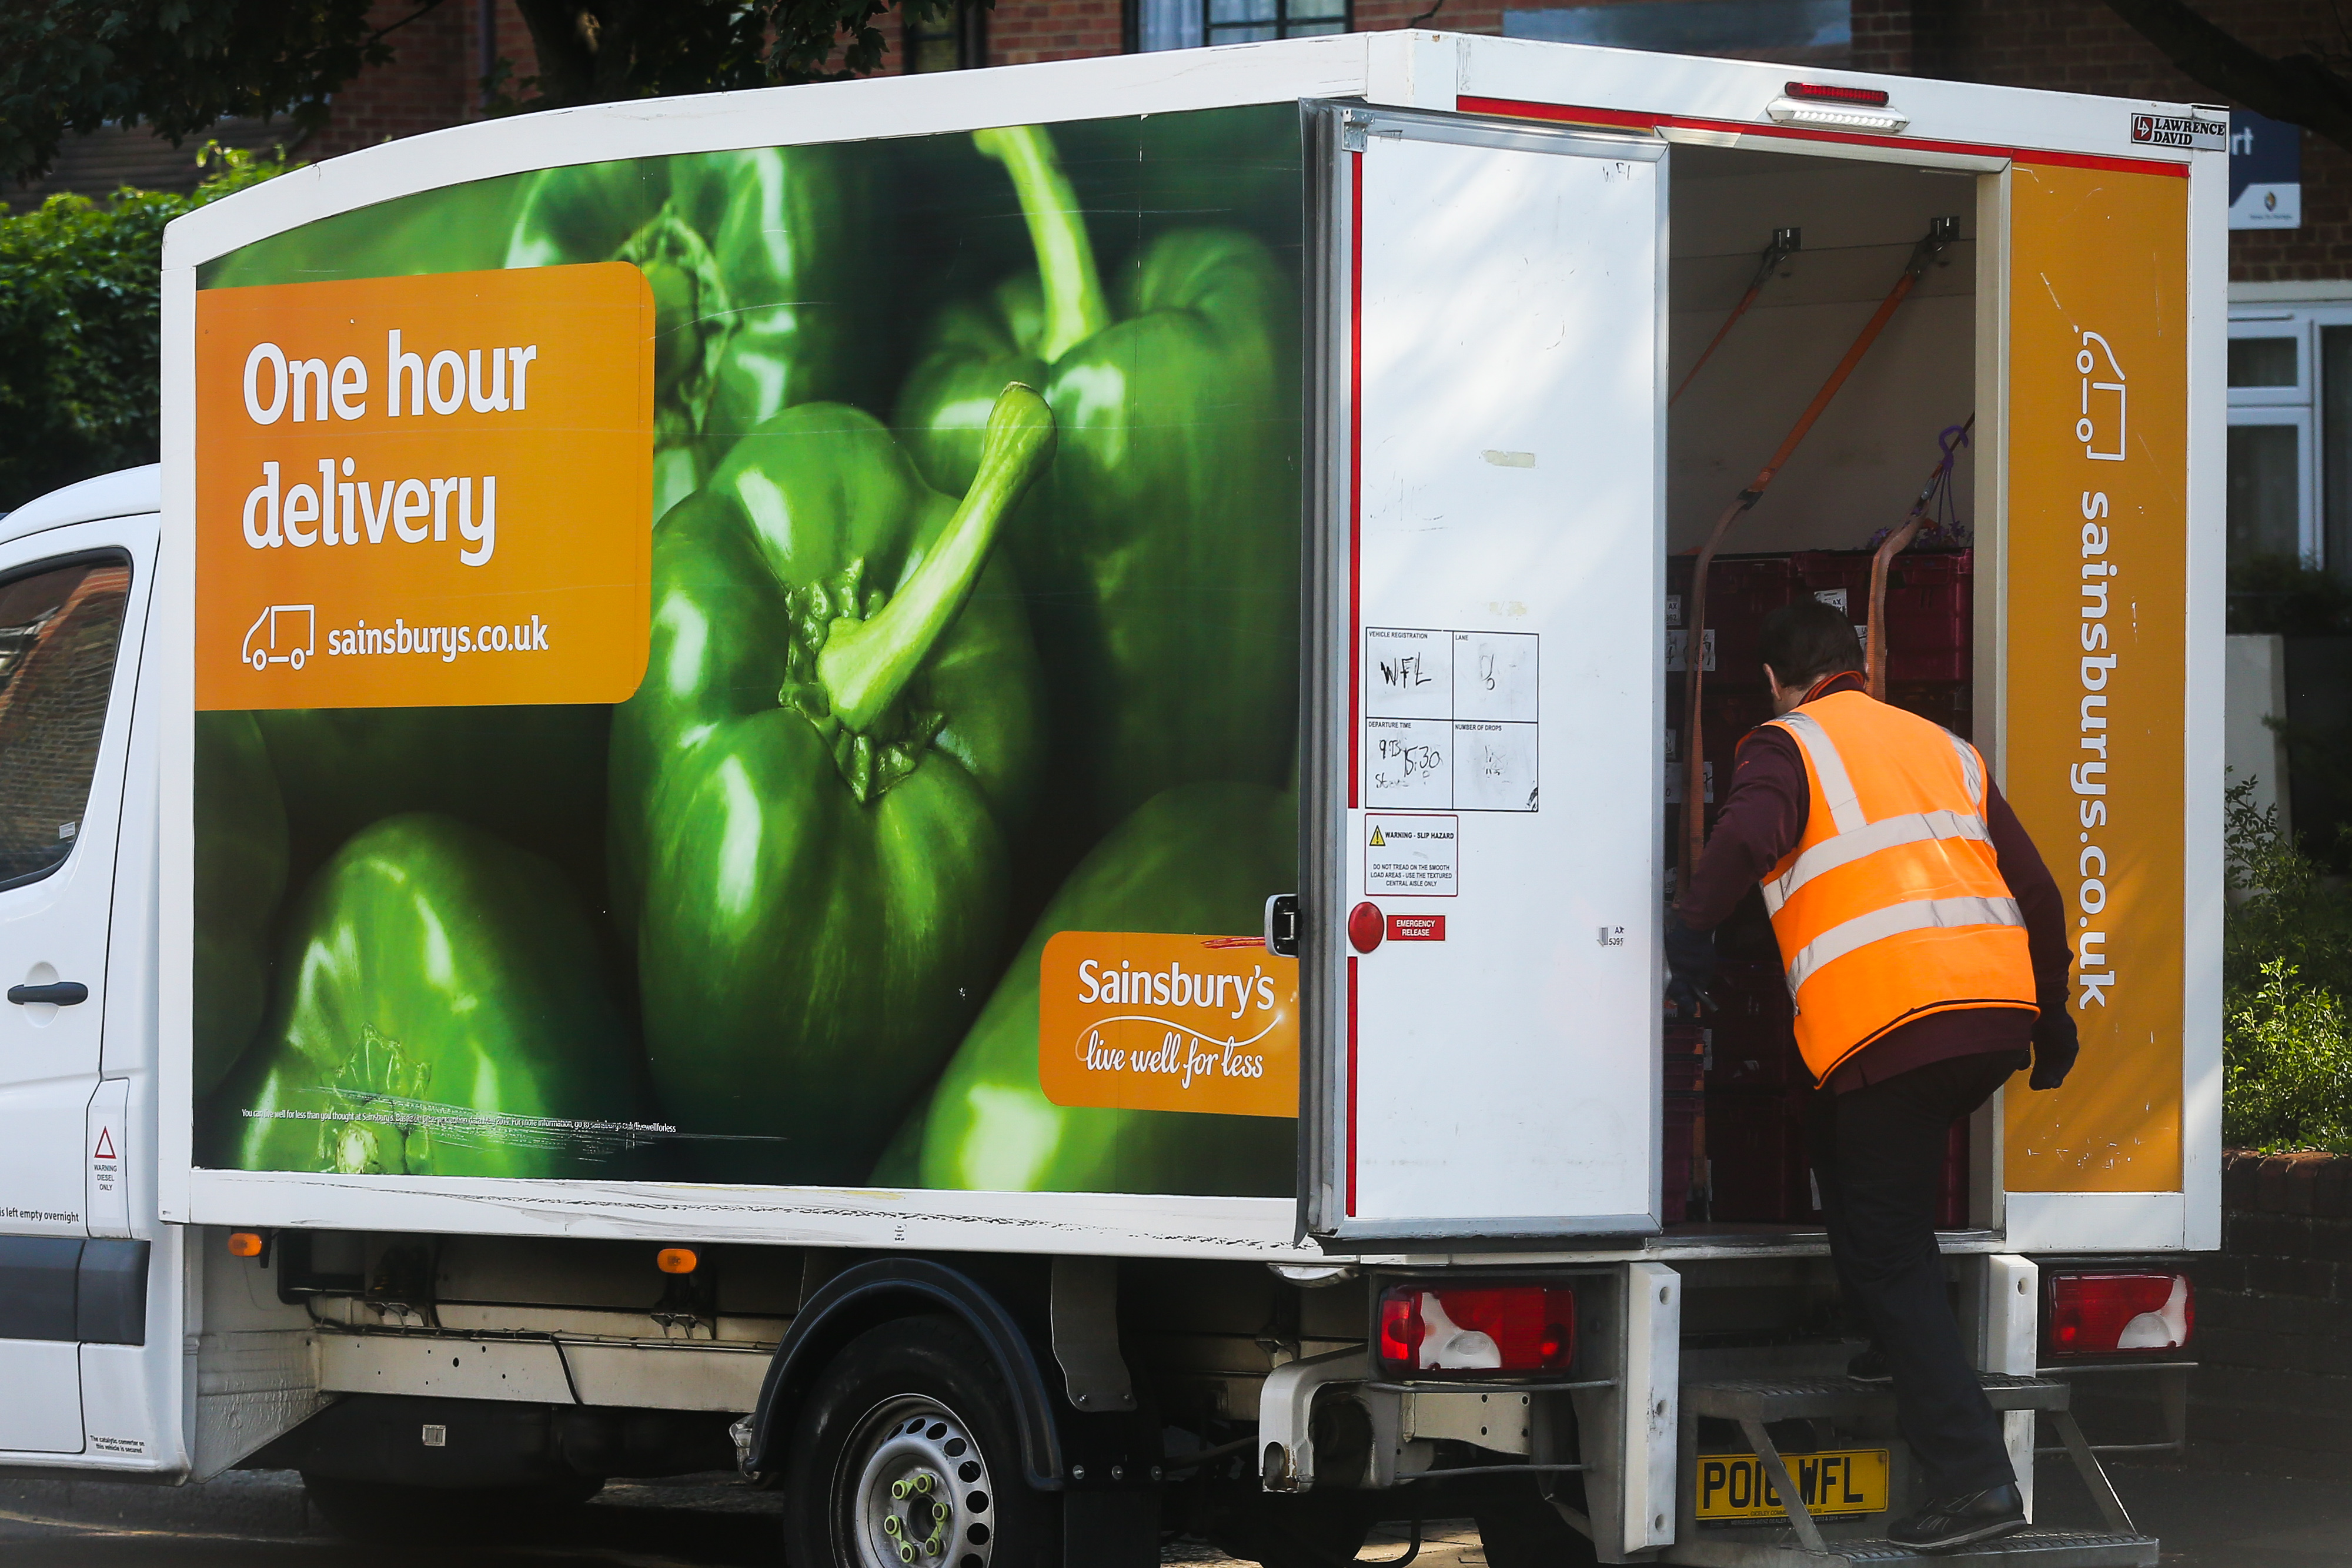 LONDON, UNITED KINGDOM - 2020/06/24: Delivery man enters a Sainsbury's delivery van as he prepares to deliver groceries purchased online from Sainsbury's supermarket. (Photo by Steve Taylor/SOPA Images/LightRocket via Getty Images)